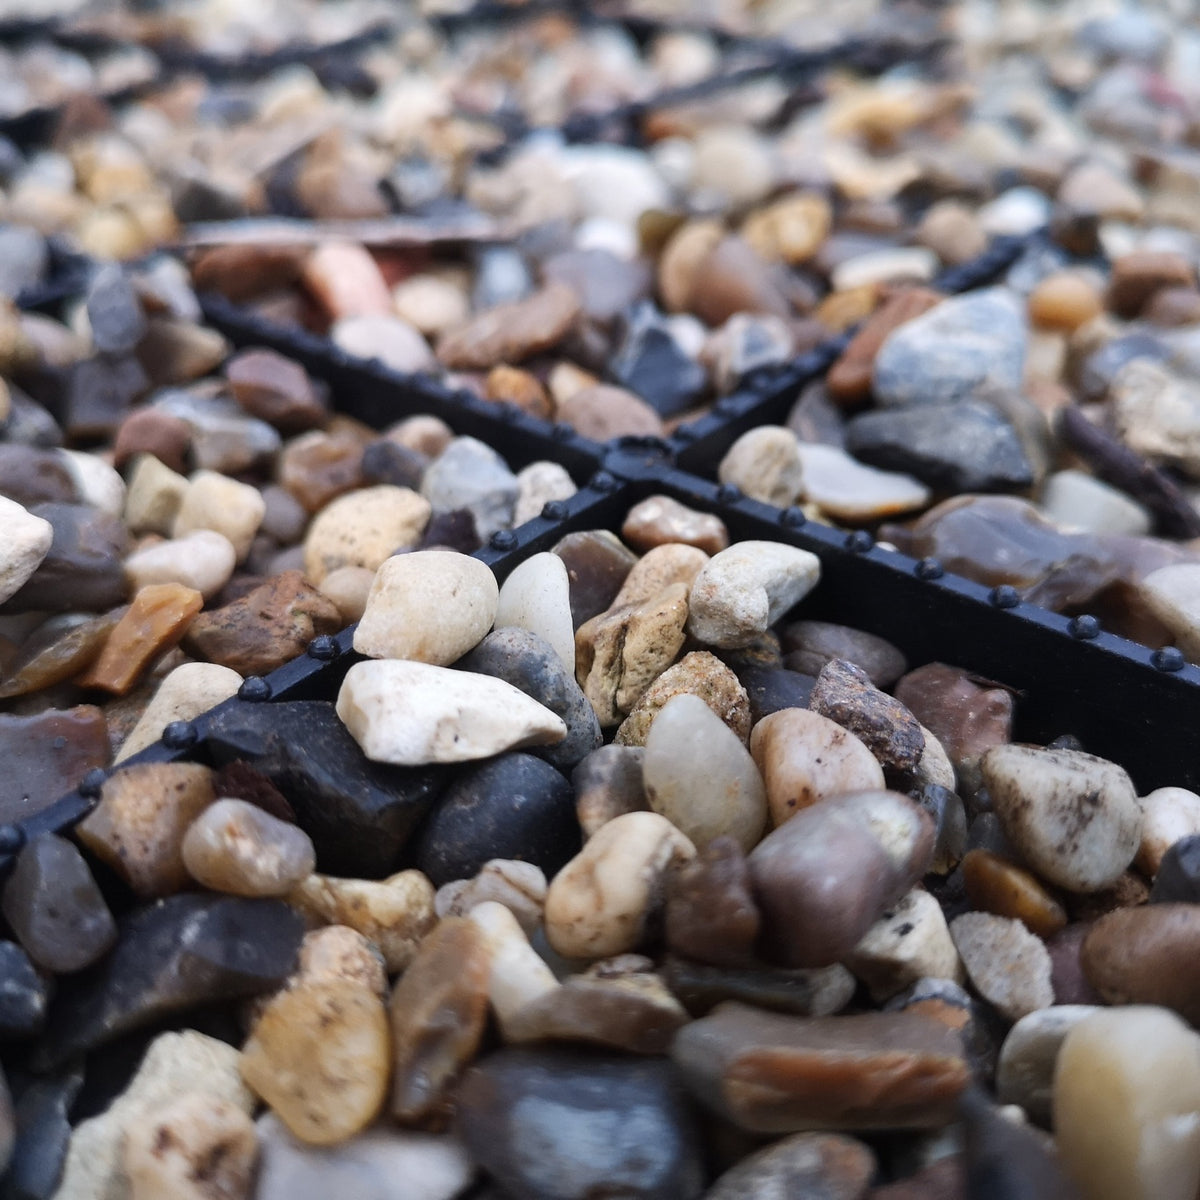 gravel driveway mat filled with stone pebbles